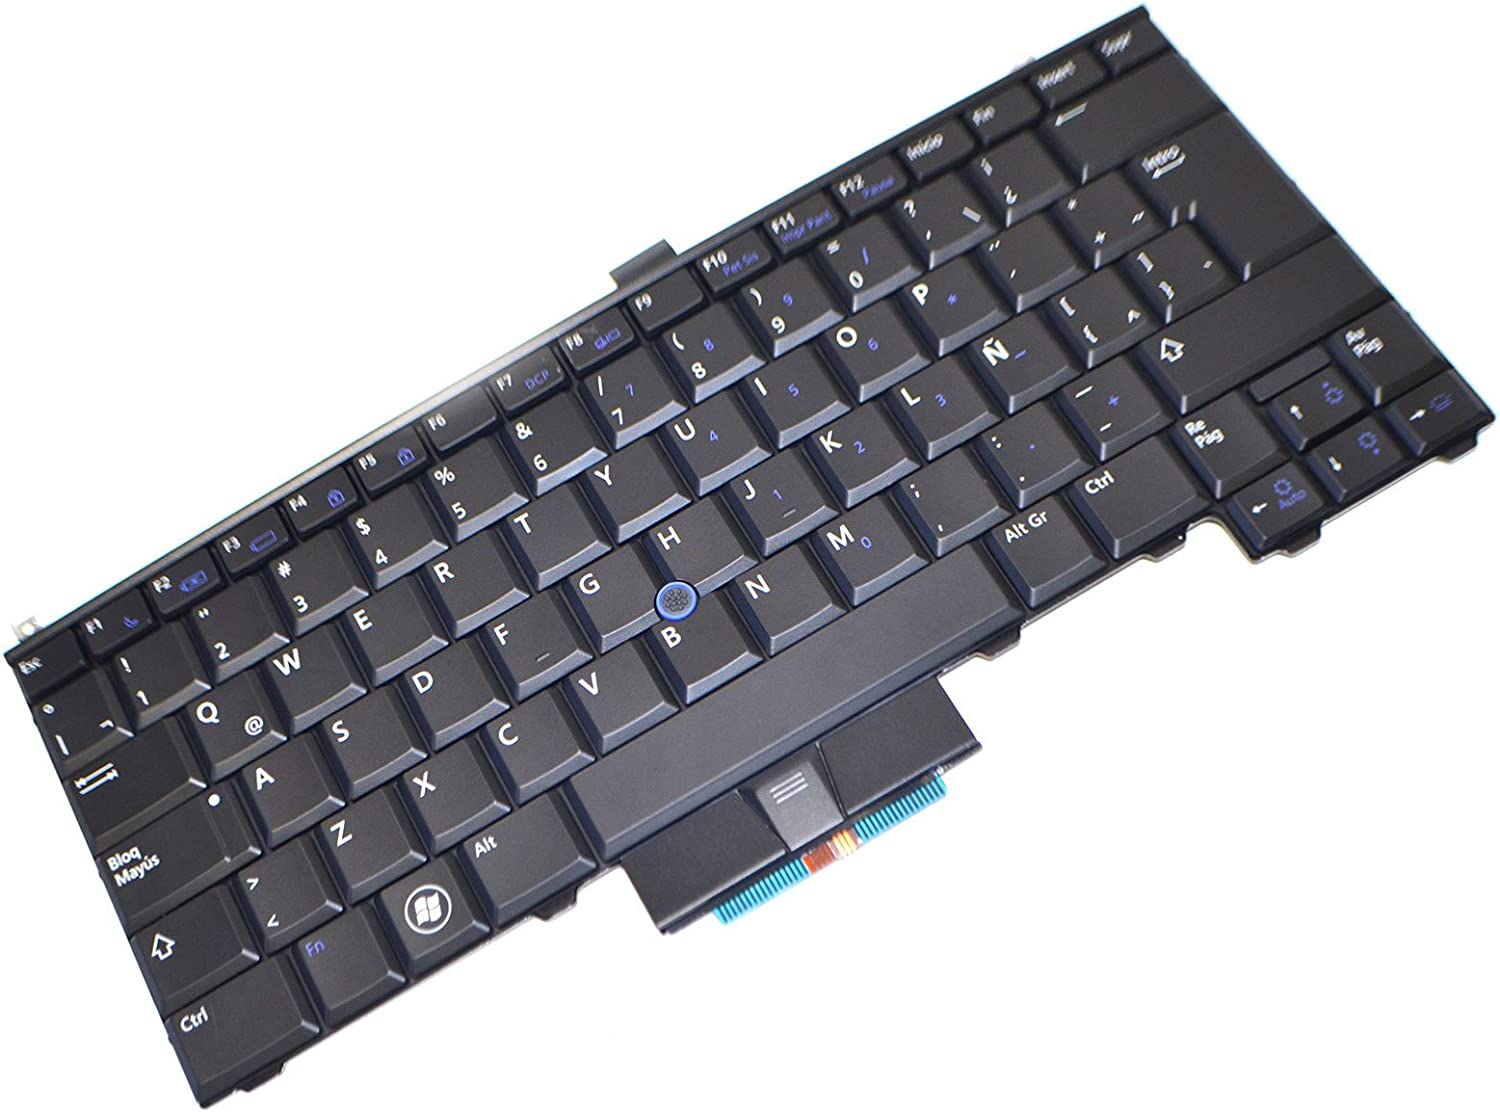 Dell 3J8GT New OEM Latitude E4310 Laptop Notebook Backlit Spanish Latin 84 Keys Stroke Keypad Typing Board Mouse Pointer Model NSK-DS0BC Teclado Keyboard PK130AW2B24